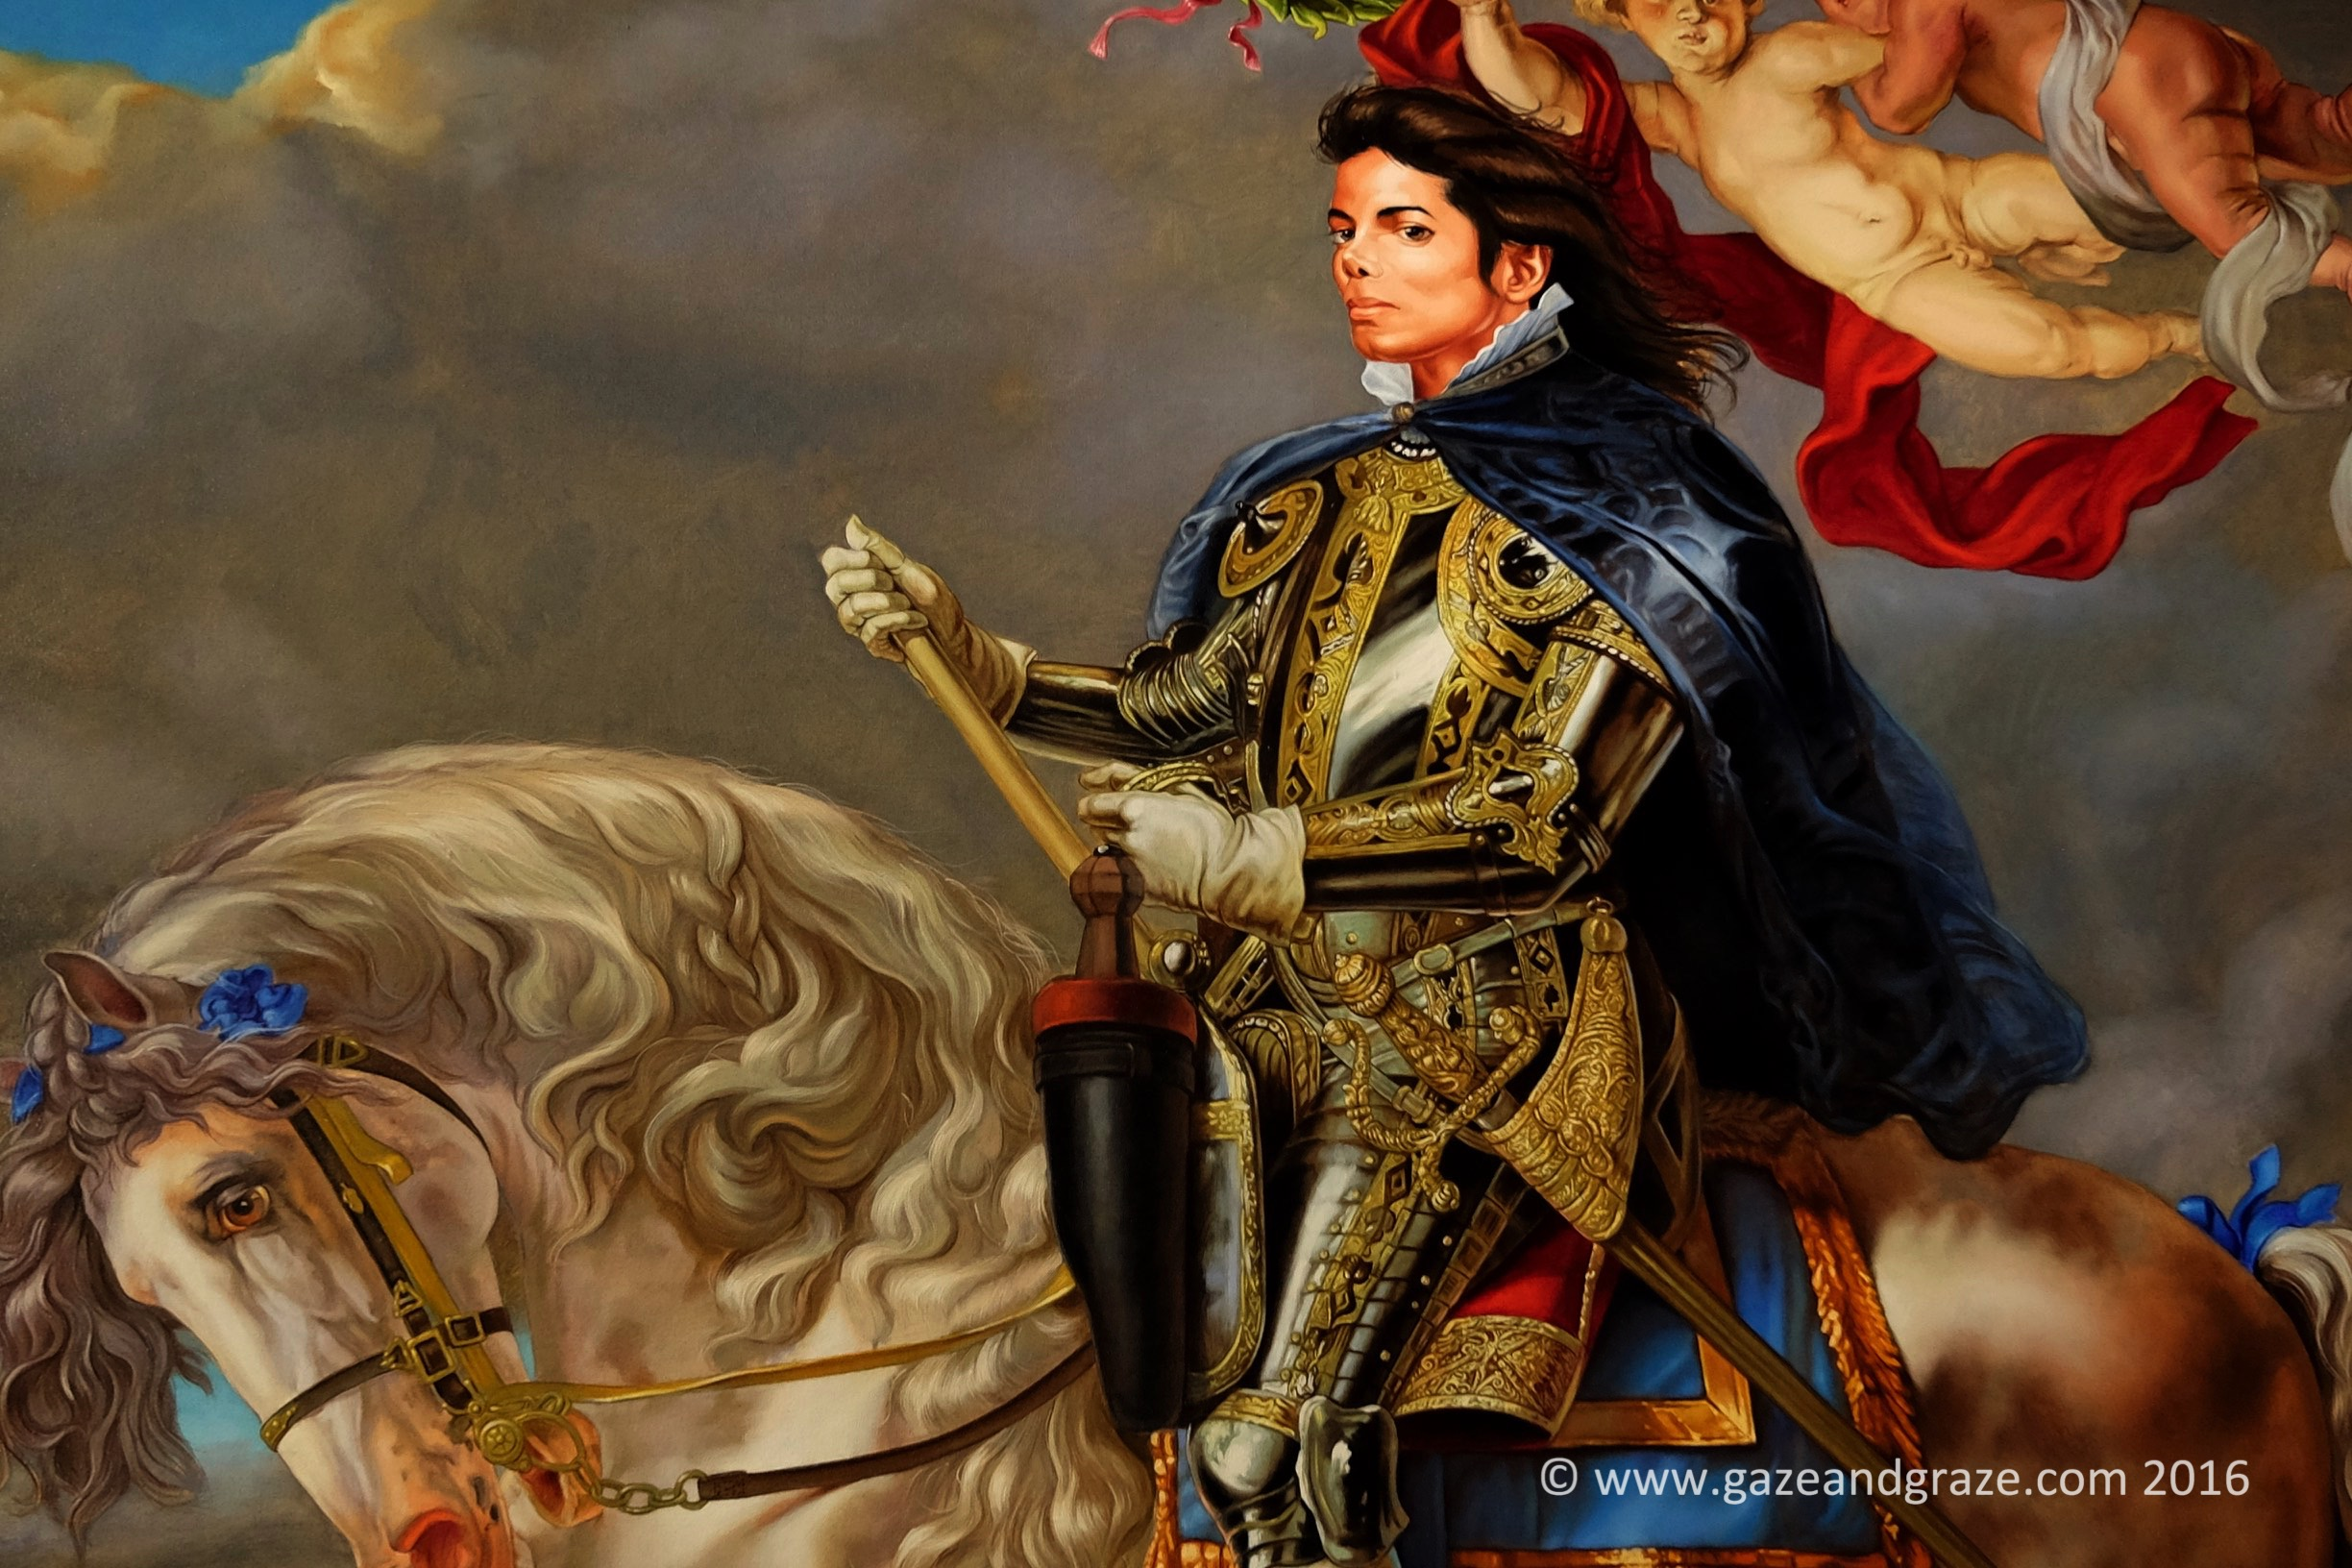 Kehinde Wiley Michael Jackson Based On Equestrian